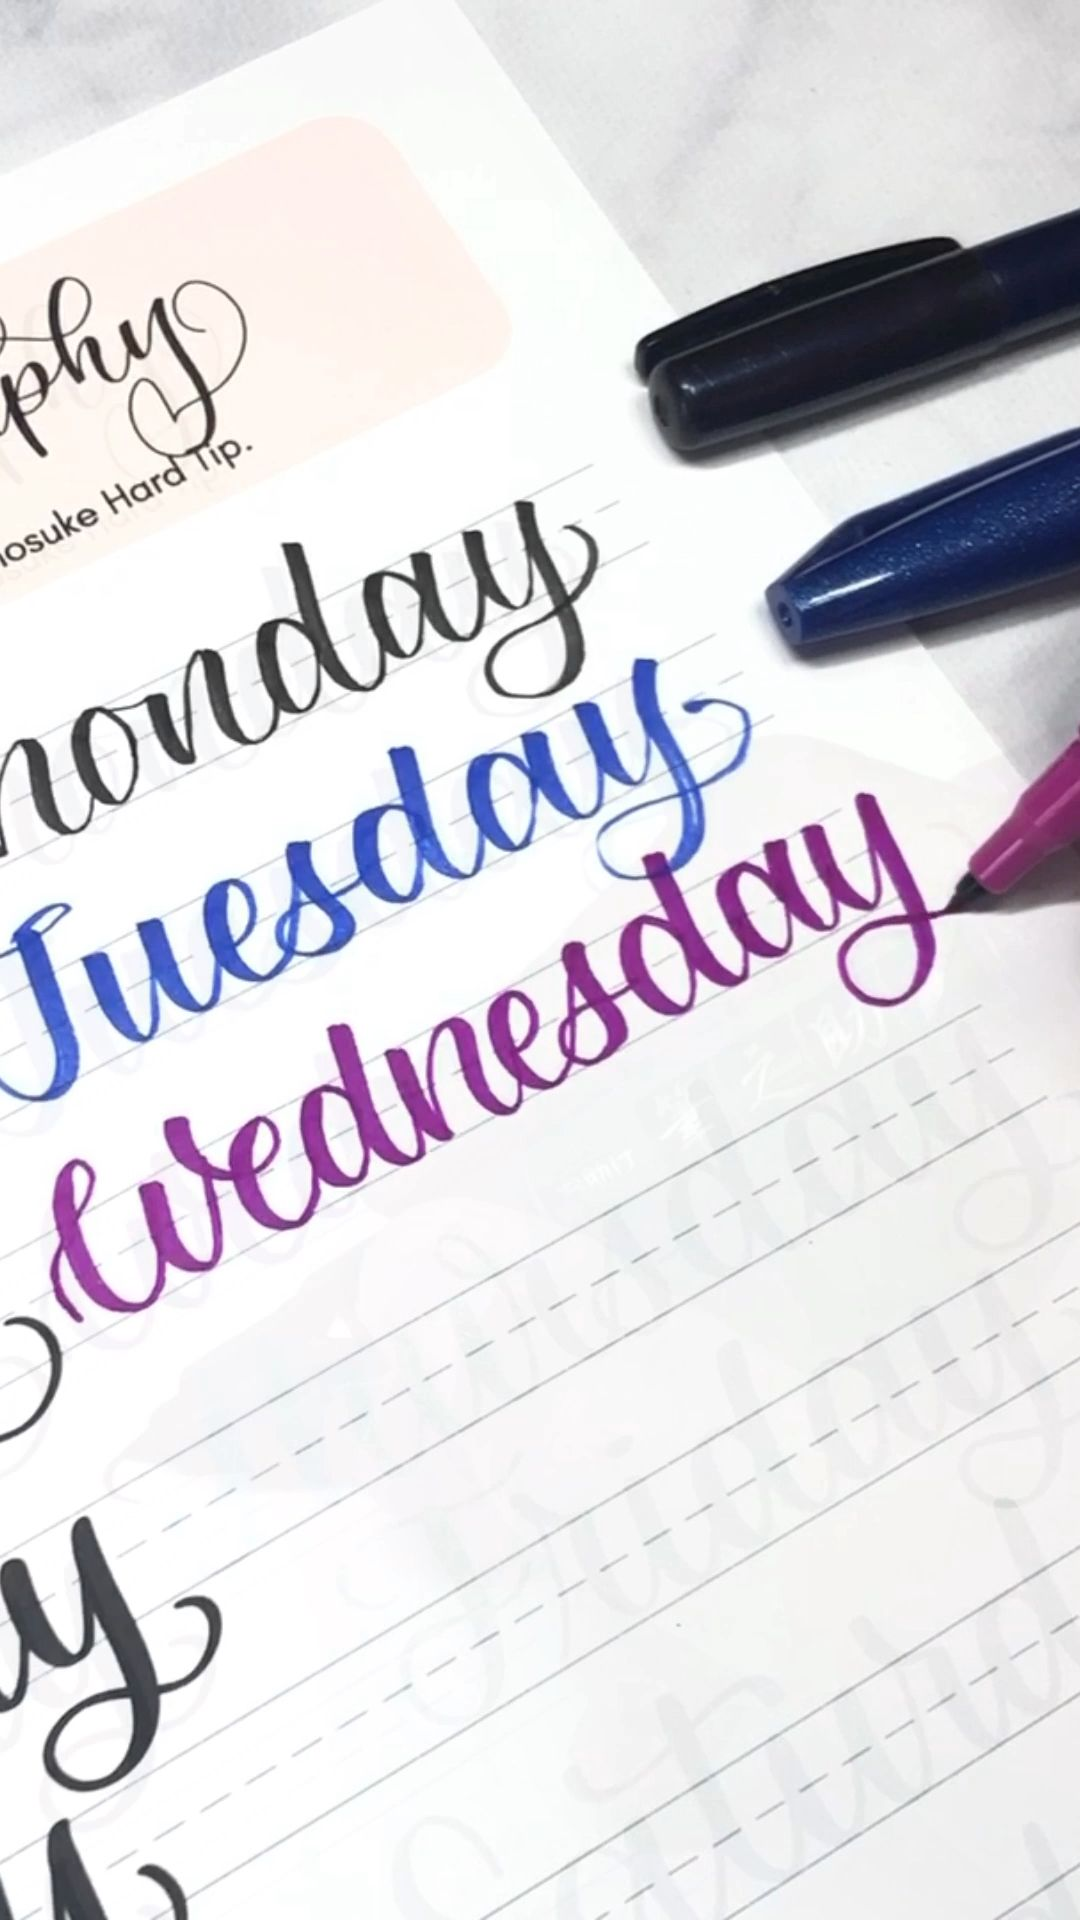 Learn to letter the days of the week | lettering for bullet journal  #bulletjournal #vialdesigns #bujolettering #learnlettering #calligraphypractice